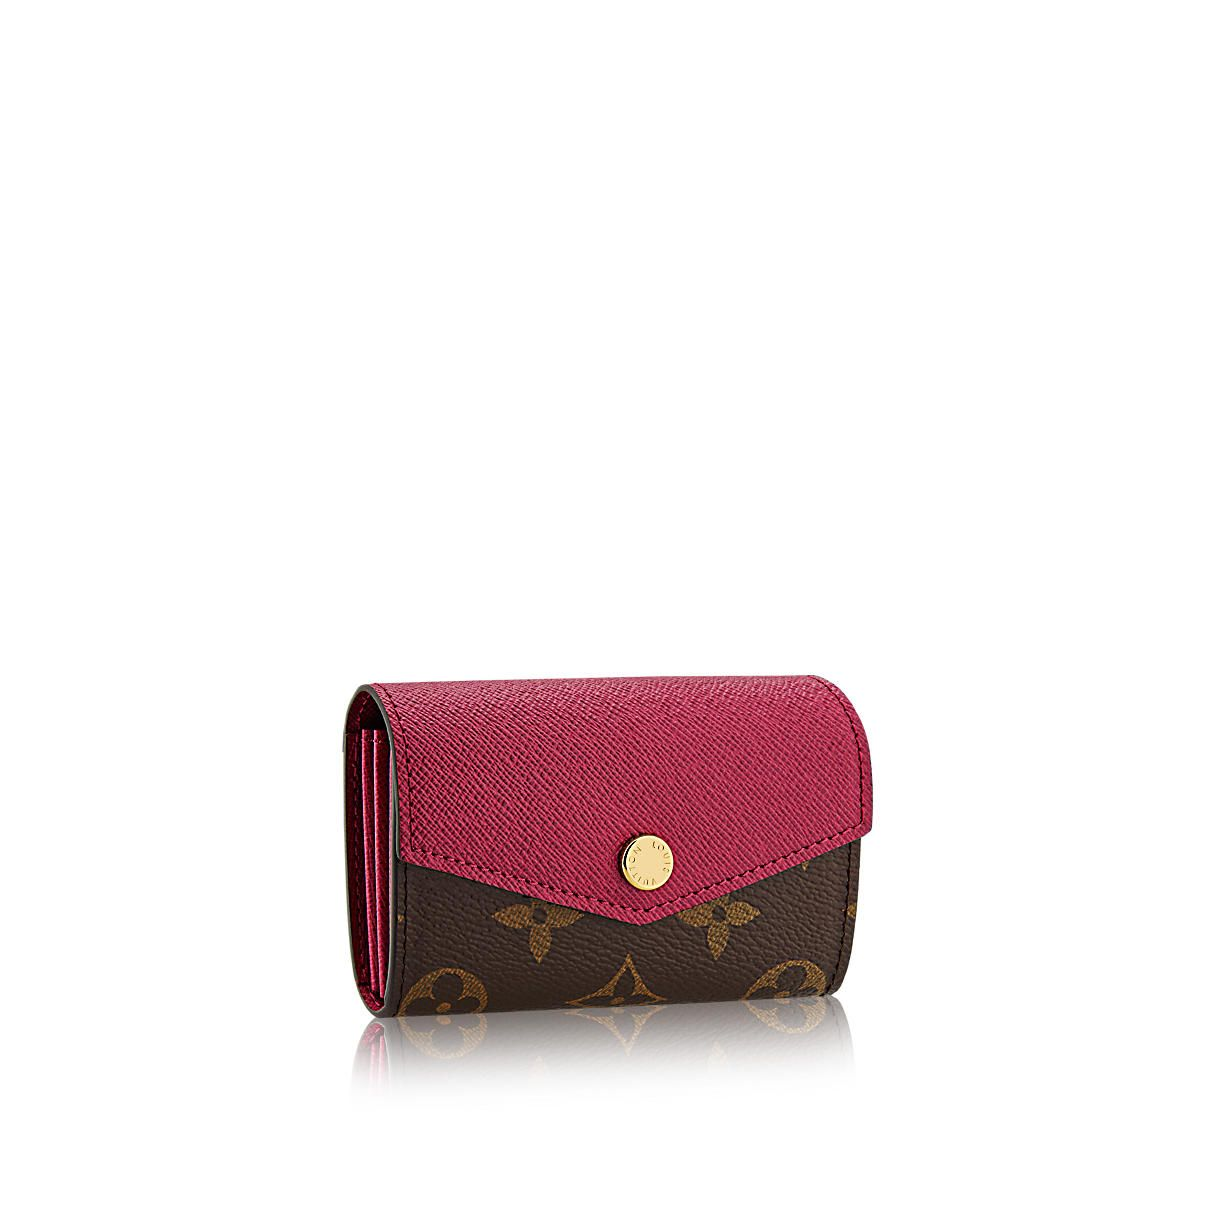 470dc445b4880 Discover Louis Vuitton Sarah multicartes Inspired by the shape of the  iconic Sarah wallet